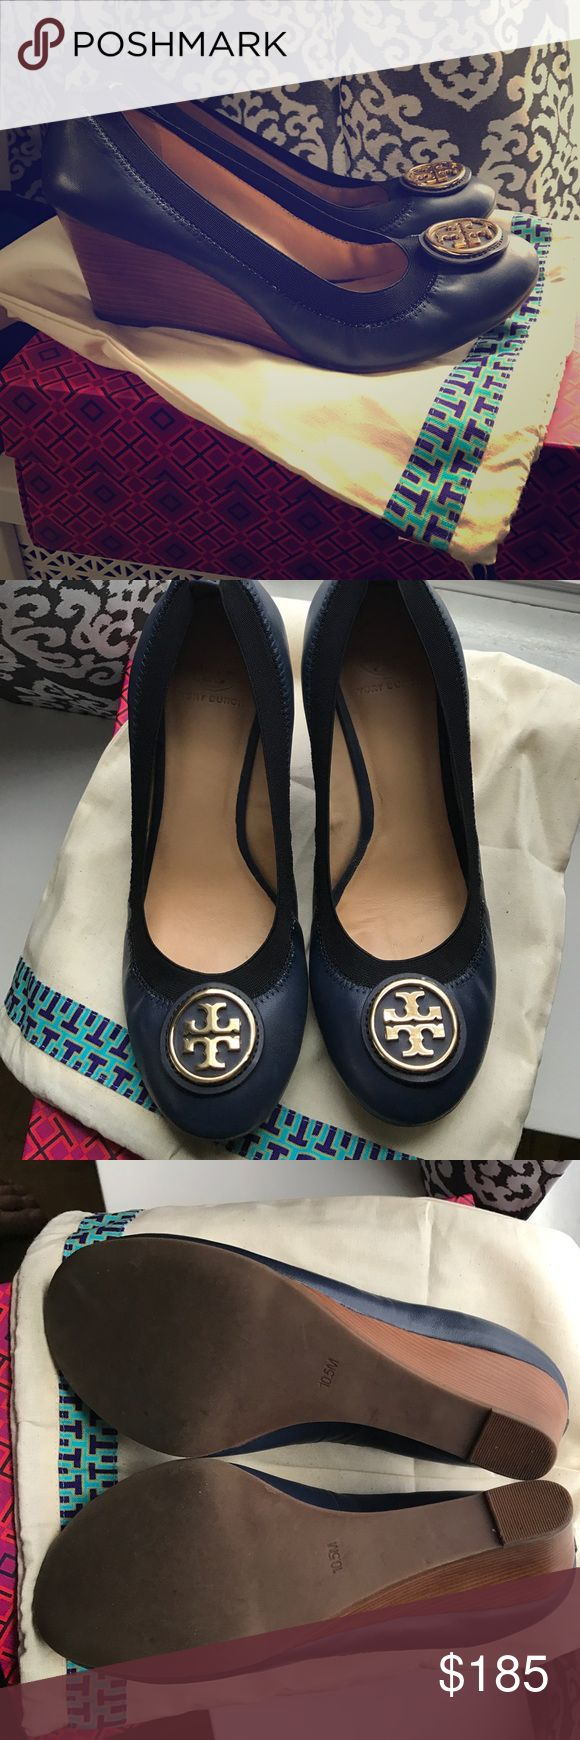 Tory Burch Blue Wedge Shoes These Tory Burch navy blue and black wedges are in near new condition. Worn 1 time.  They come with dust bag and box!  Beautiful shoes!! Tory Burch Shoes Platforms